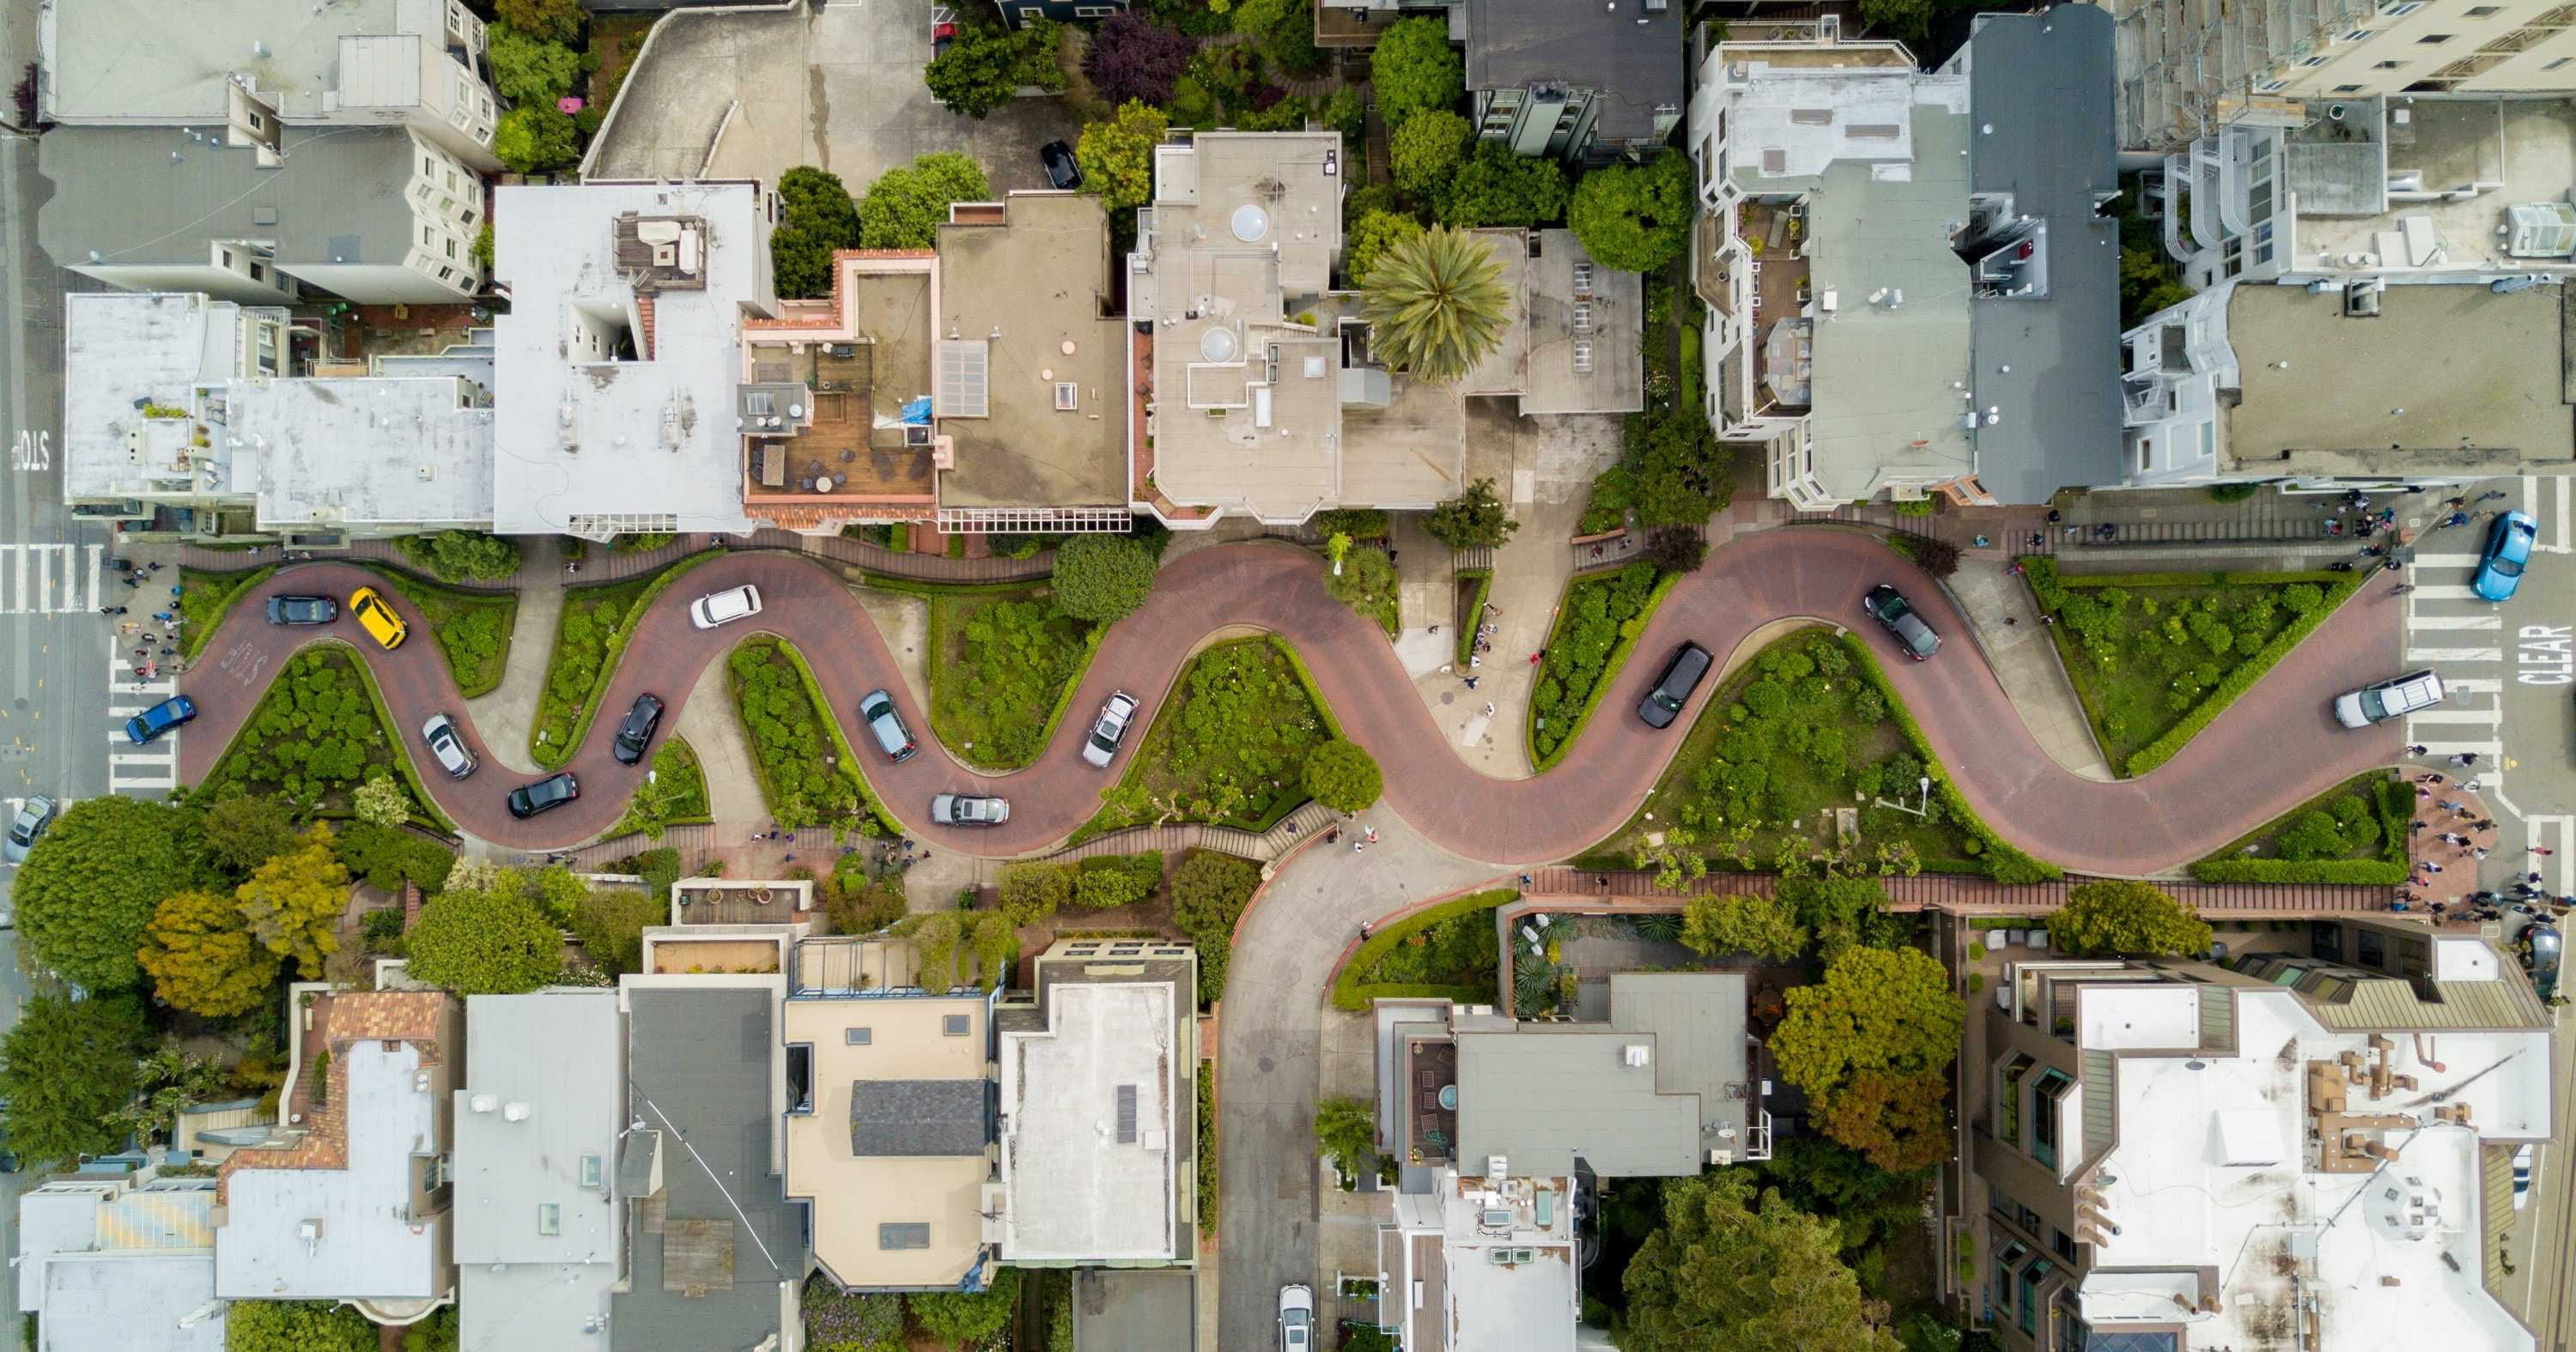 SFCTA aims to impose Lombard St. access fee